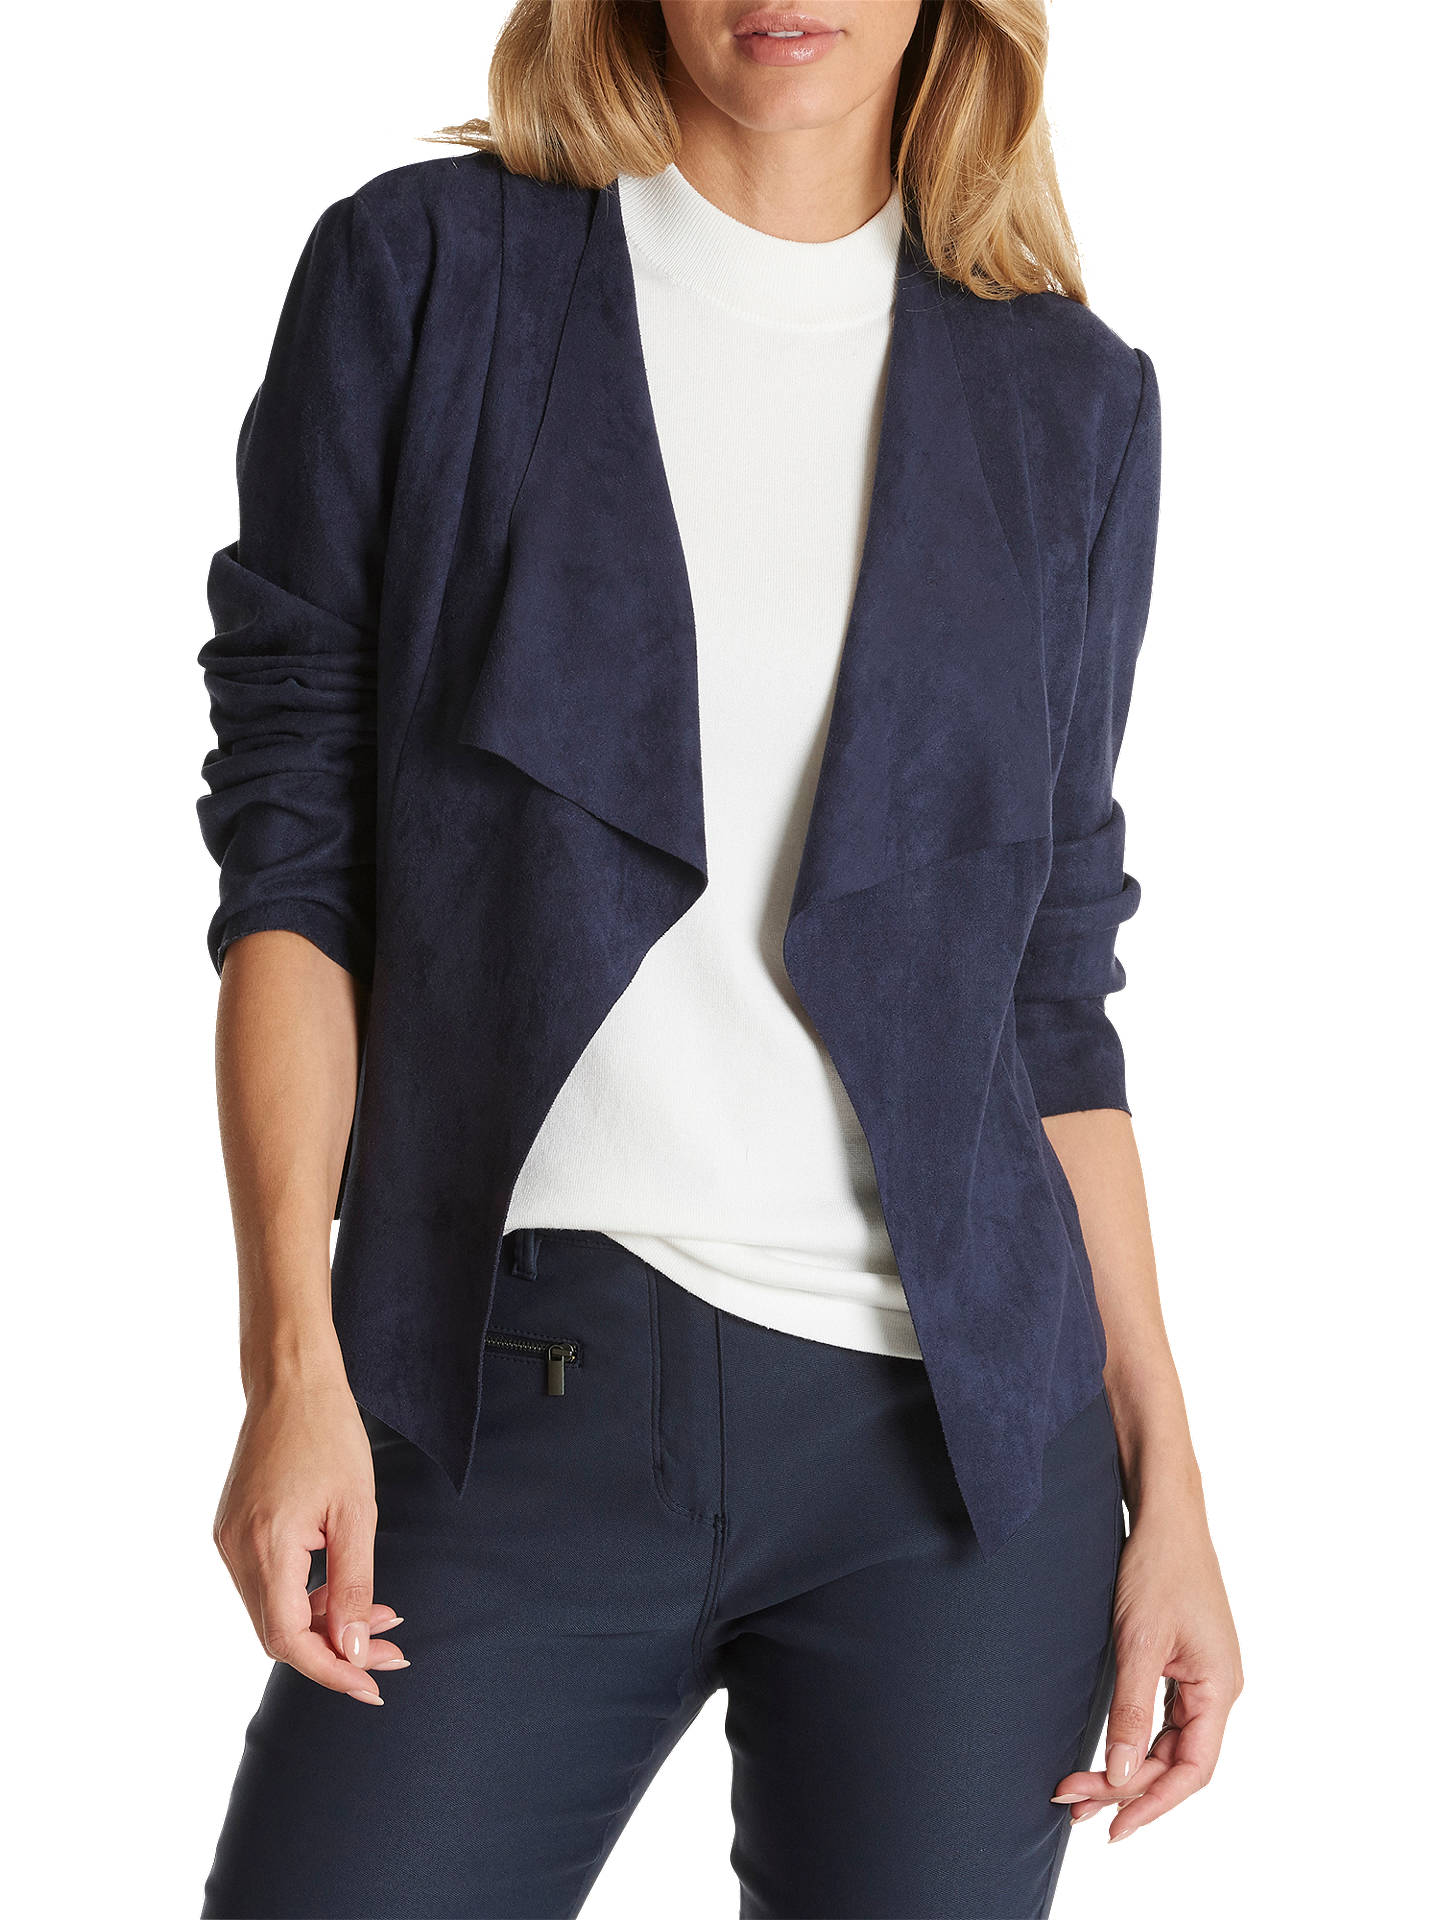 BuyBetty Barclay Faux Suede Waterfall Jacket, Dark Grey, 10 Online at johnlewis.com